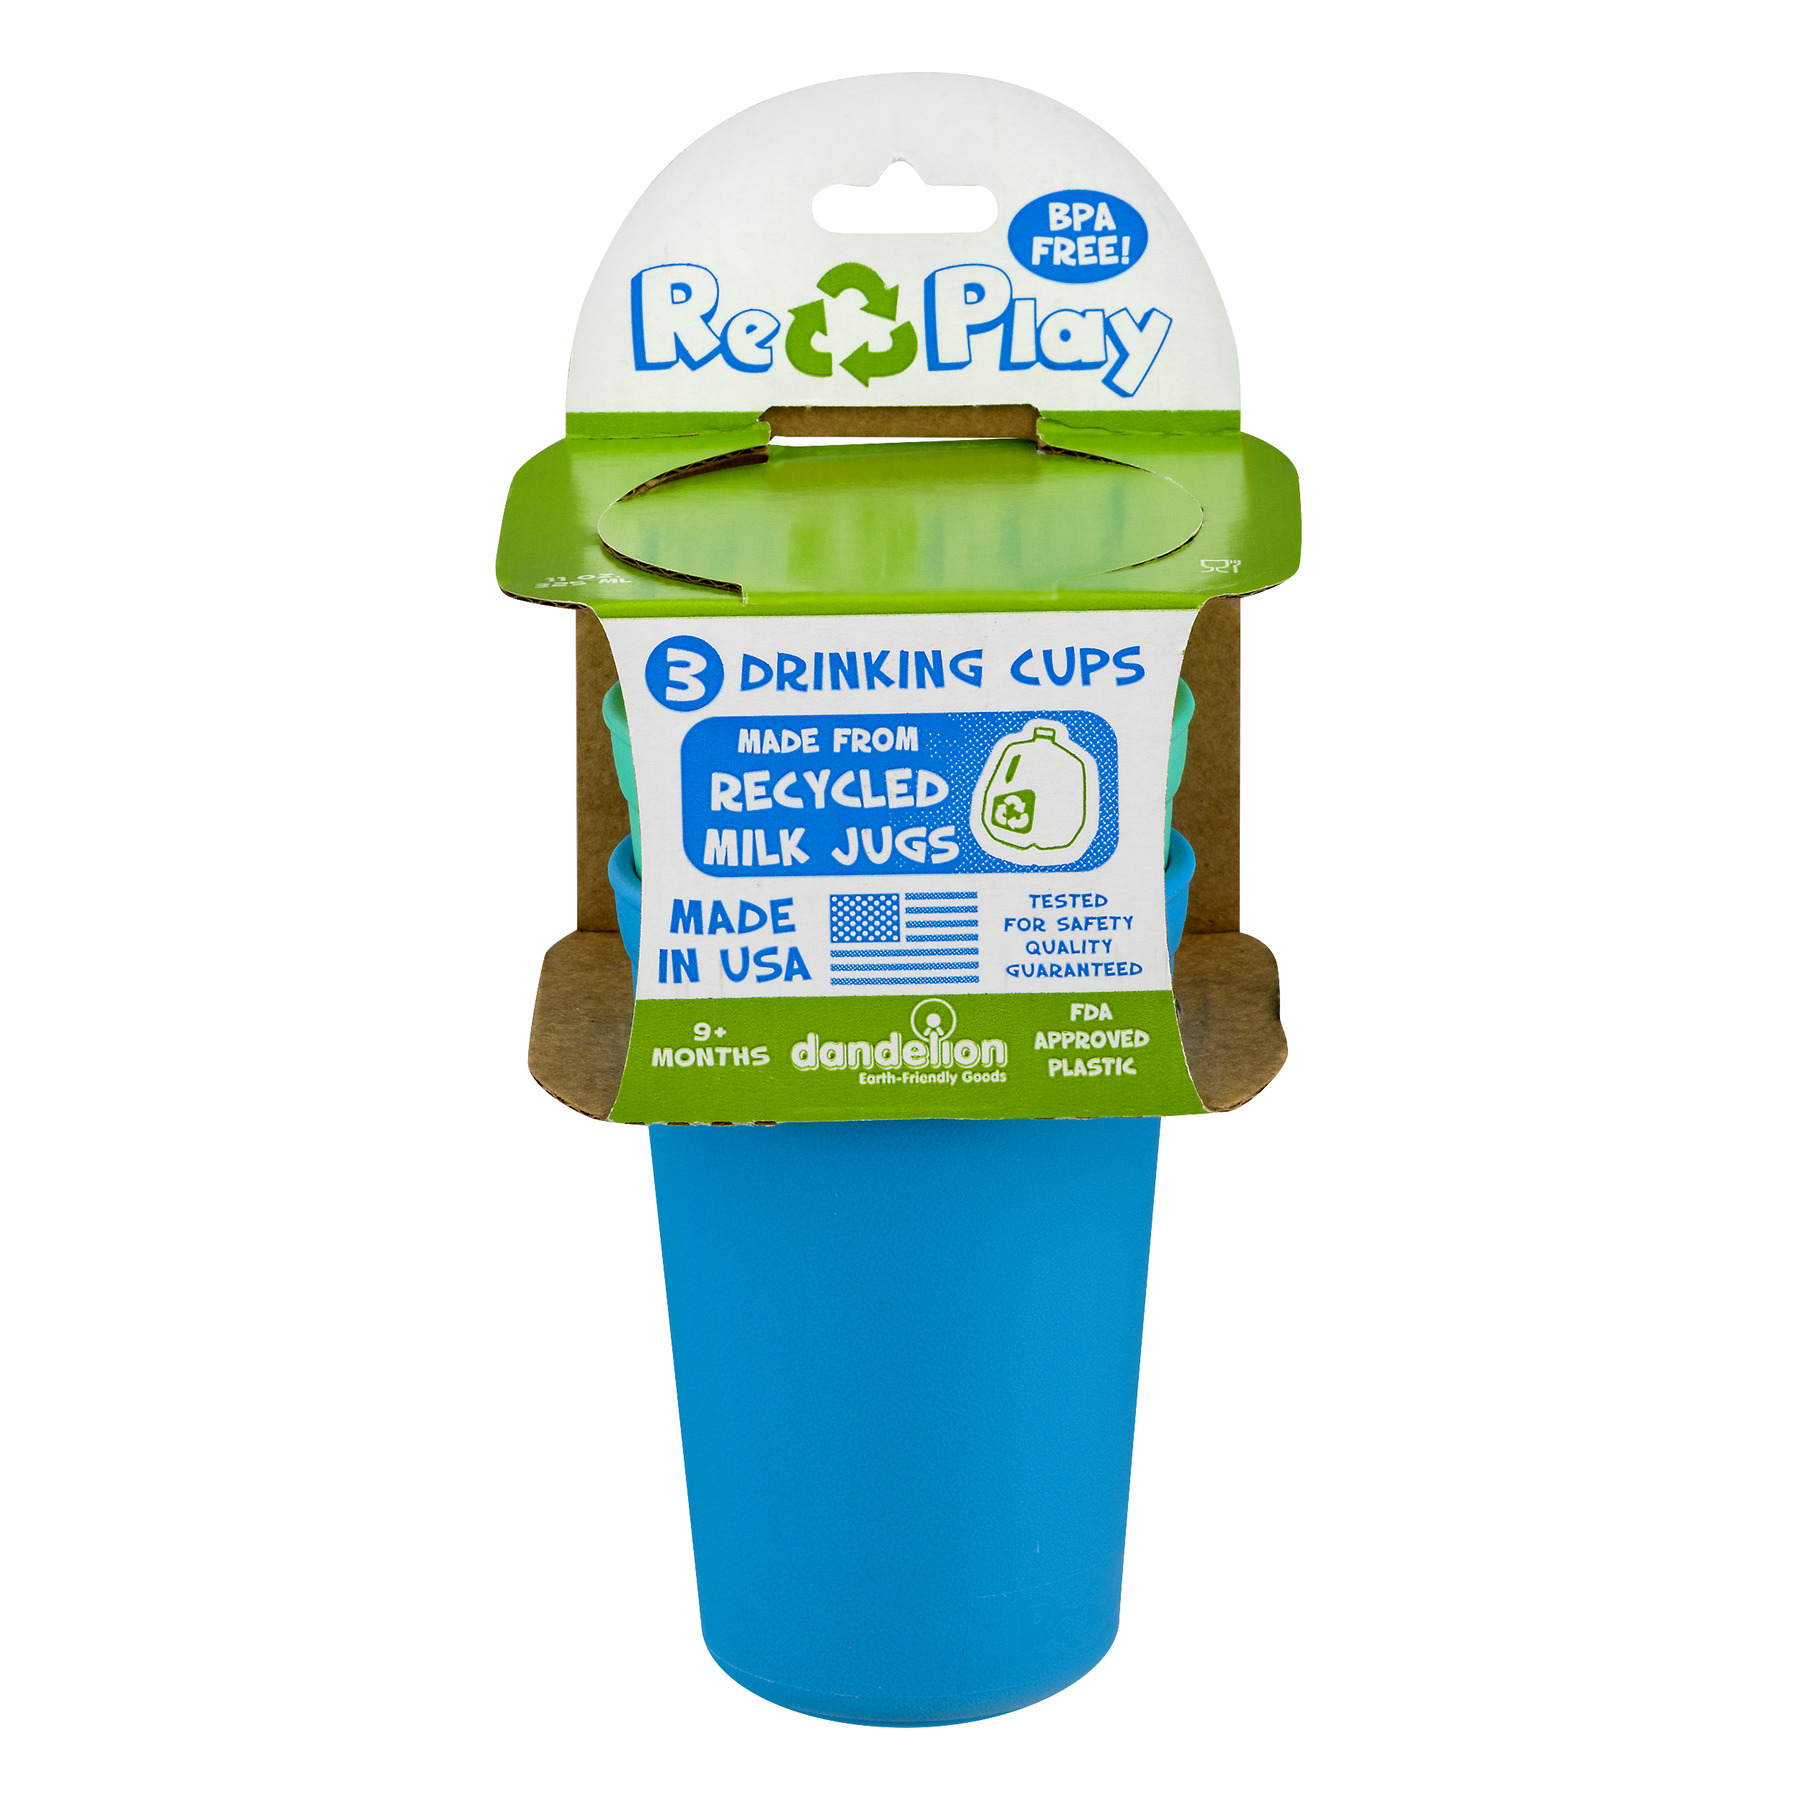 Re-Play Recycled 3pk Drinking Cups Princess Combo in Packaging by Re-Play